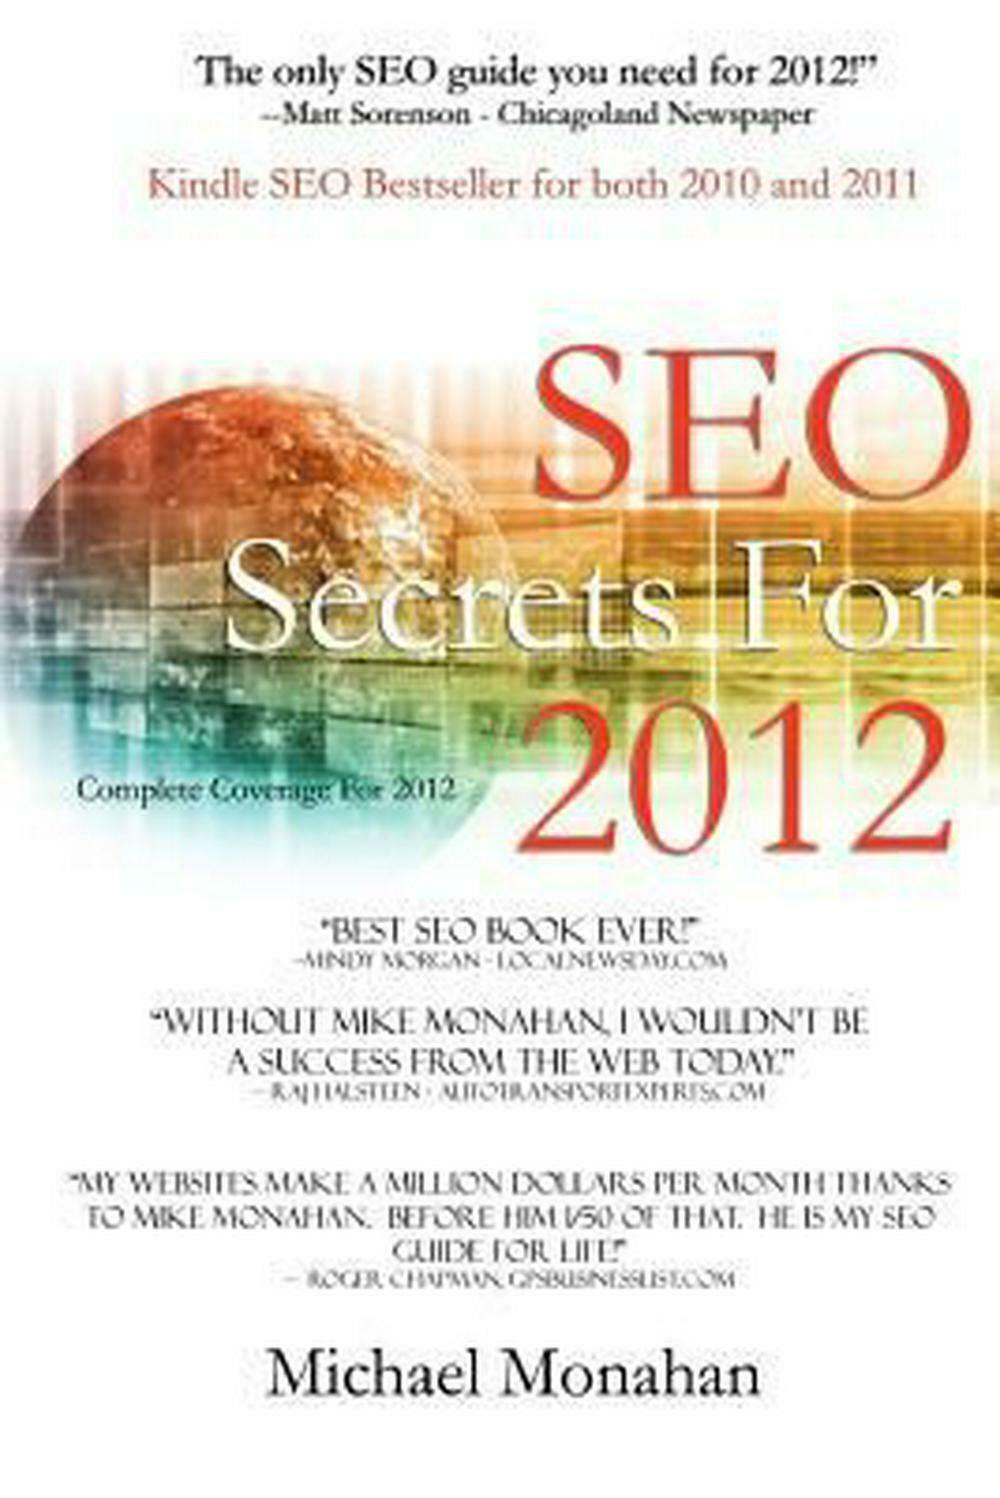 Seo Secrets for 2012: Search Engine Optimization by Michael C. Monahan (English)